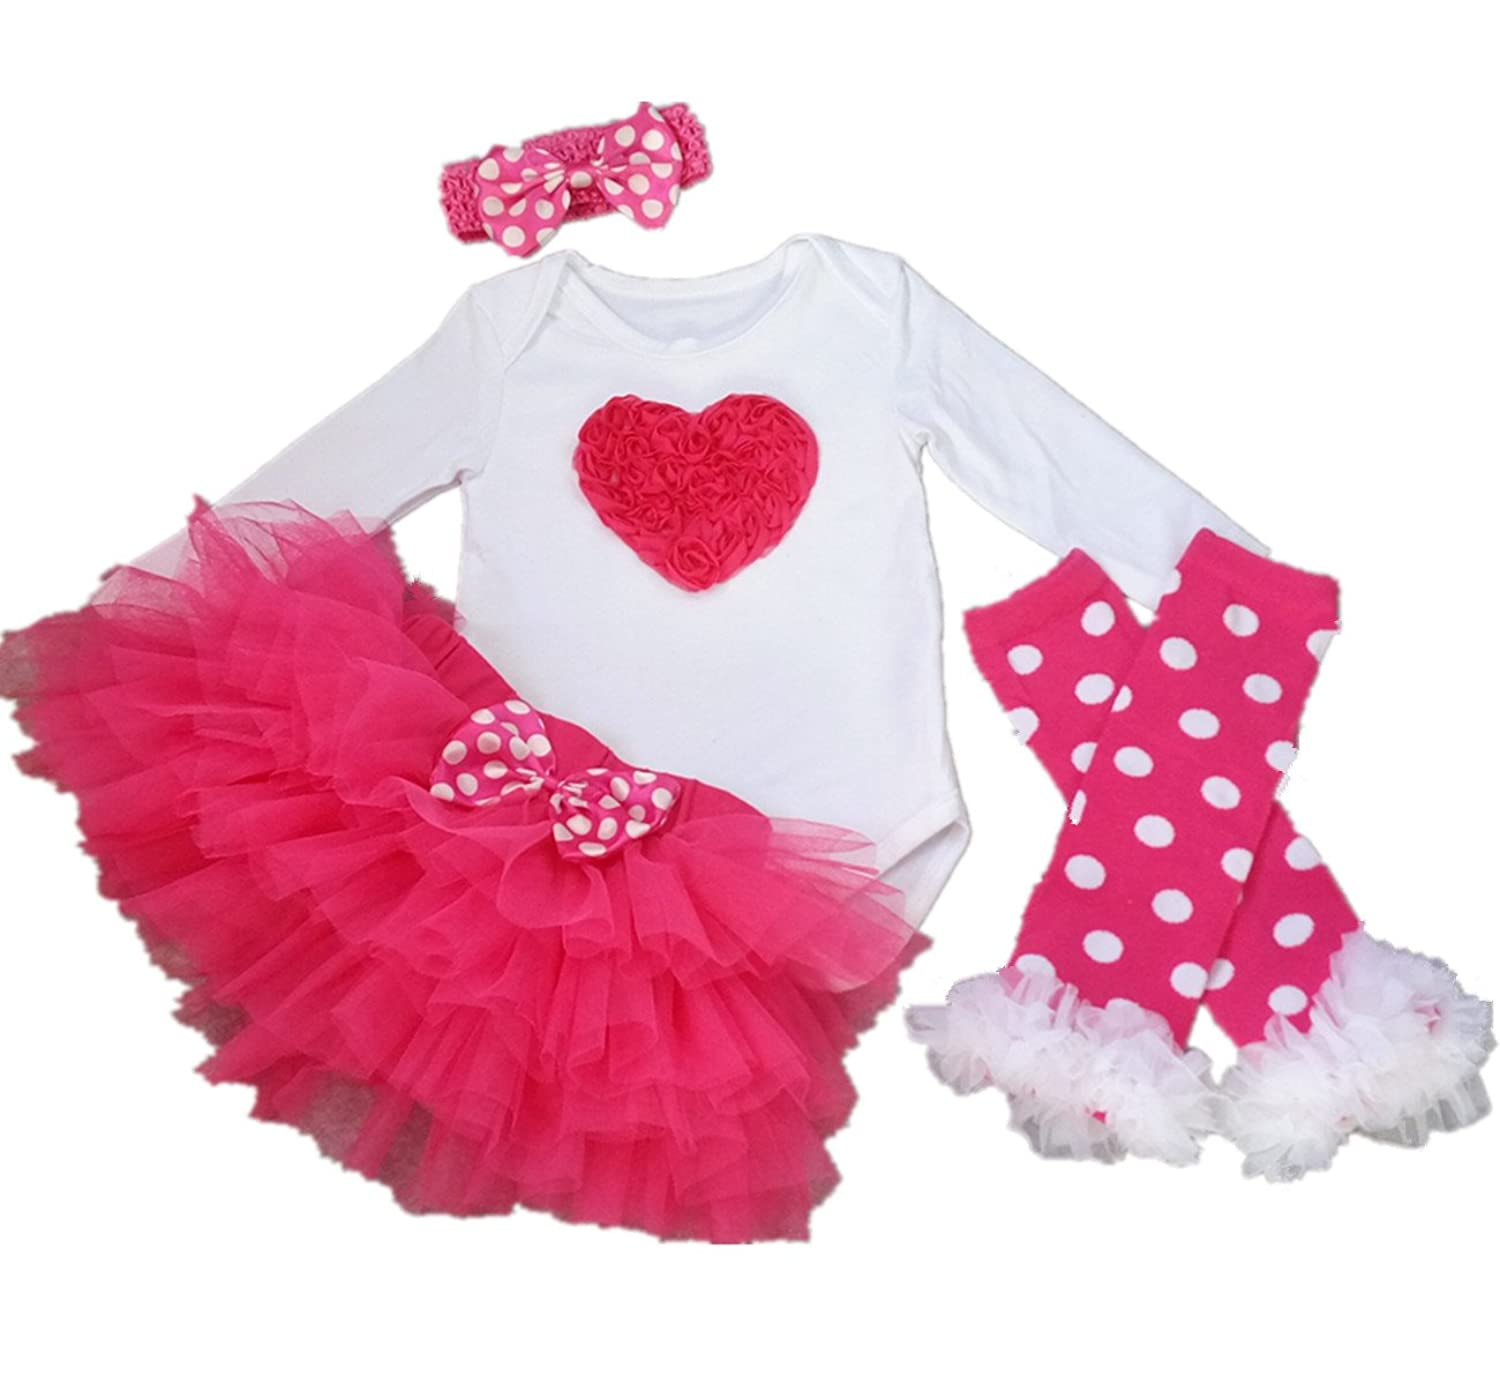 amazoncom aishiony baby girl 1st christmas tutu outfit newborn princess party dress 3pcs clothing - Infant Valentines Day Outfits